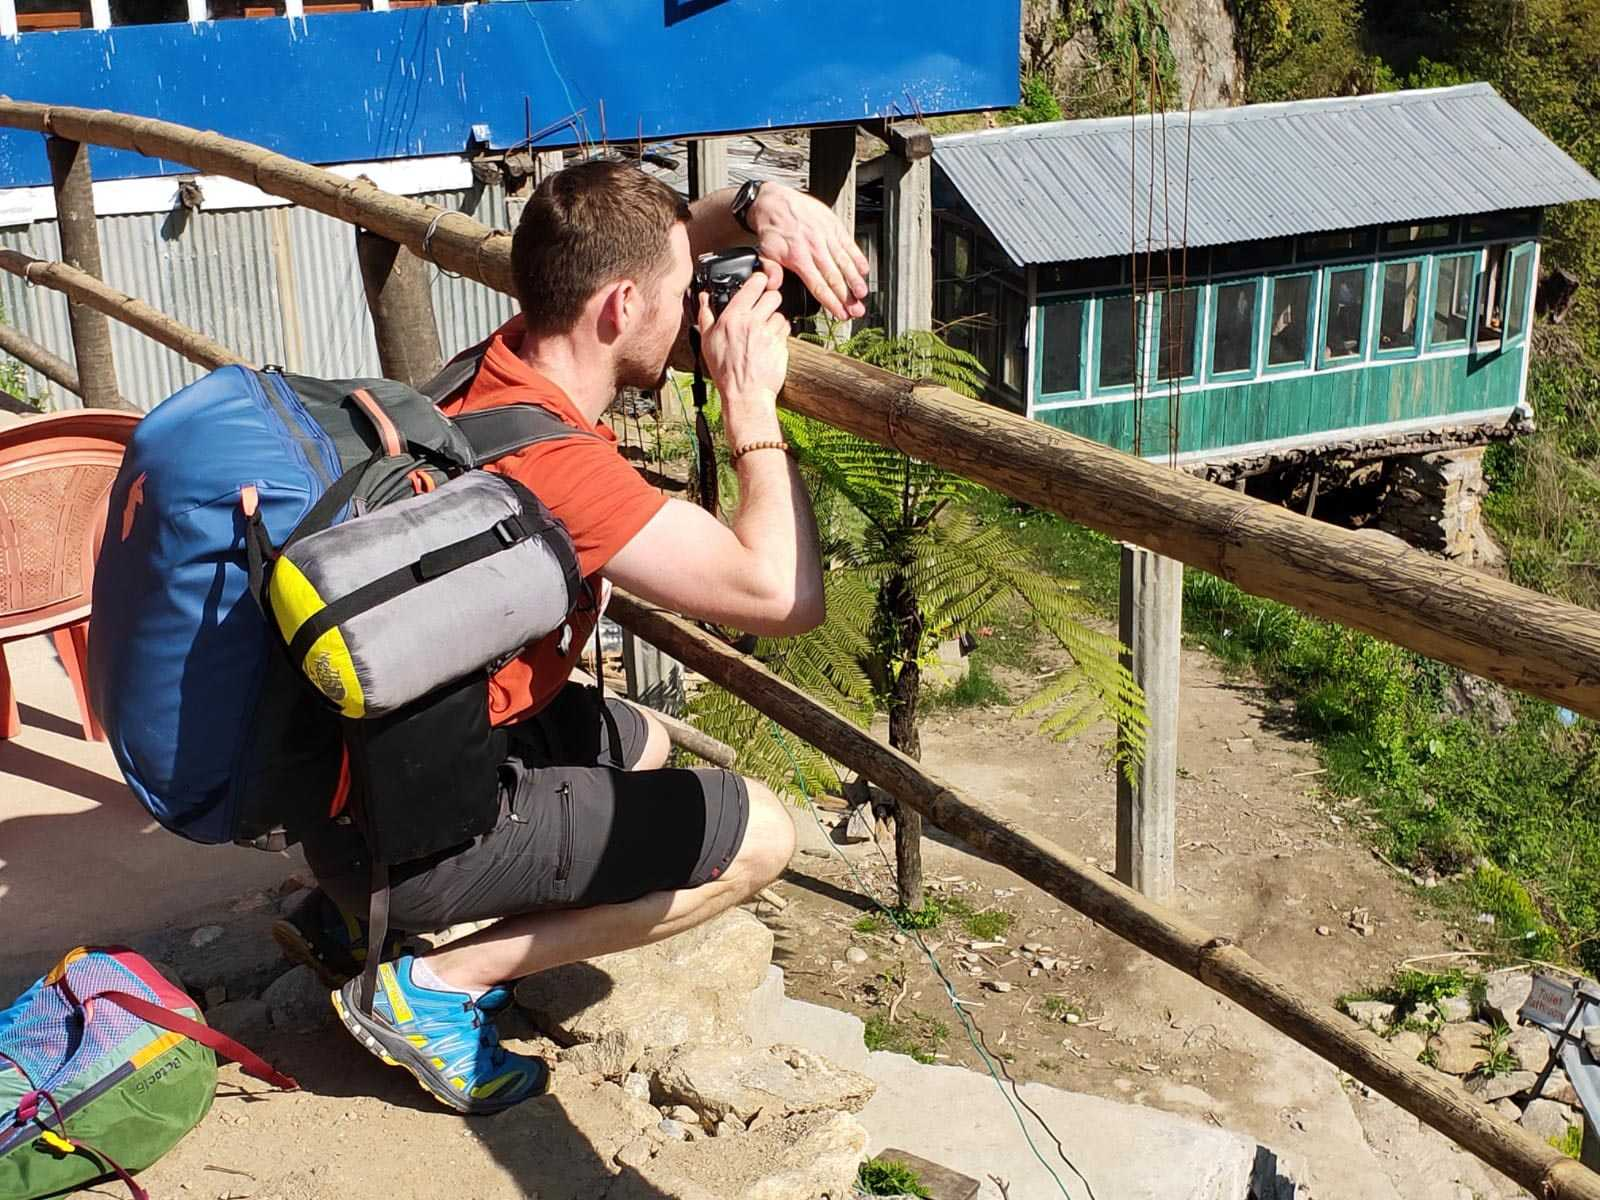 Man (Alexei, from Travelexx) on the edge of a cliff, squatting down behind a wooden fence-like structure made of poles. He is taking a photograph with a camera of whatever is on the other side of the fence/down from the cliff. He has a backpack on, he is also carrying a sleeping bag shaped item on his back, and there's another small pack by his feet.